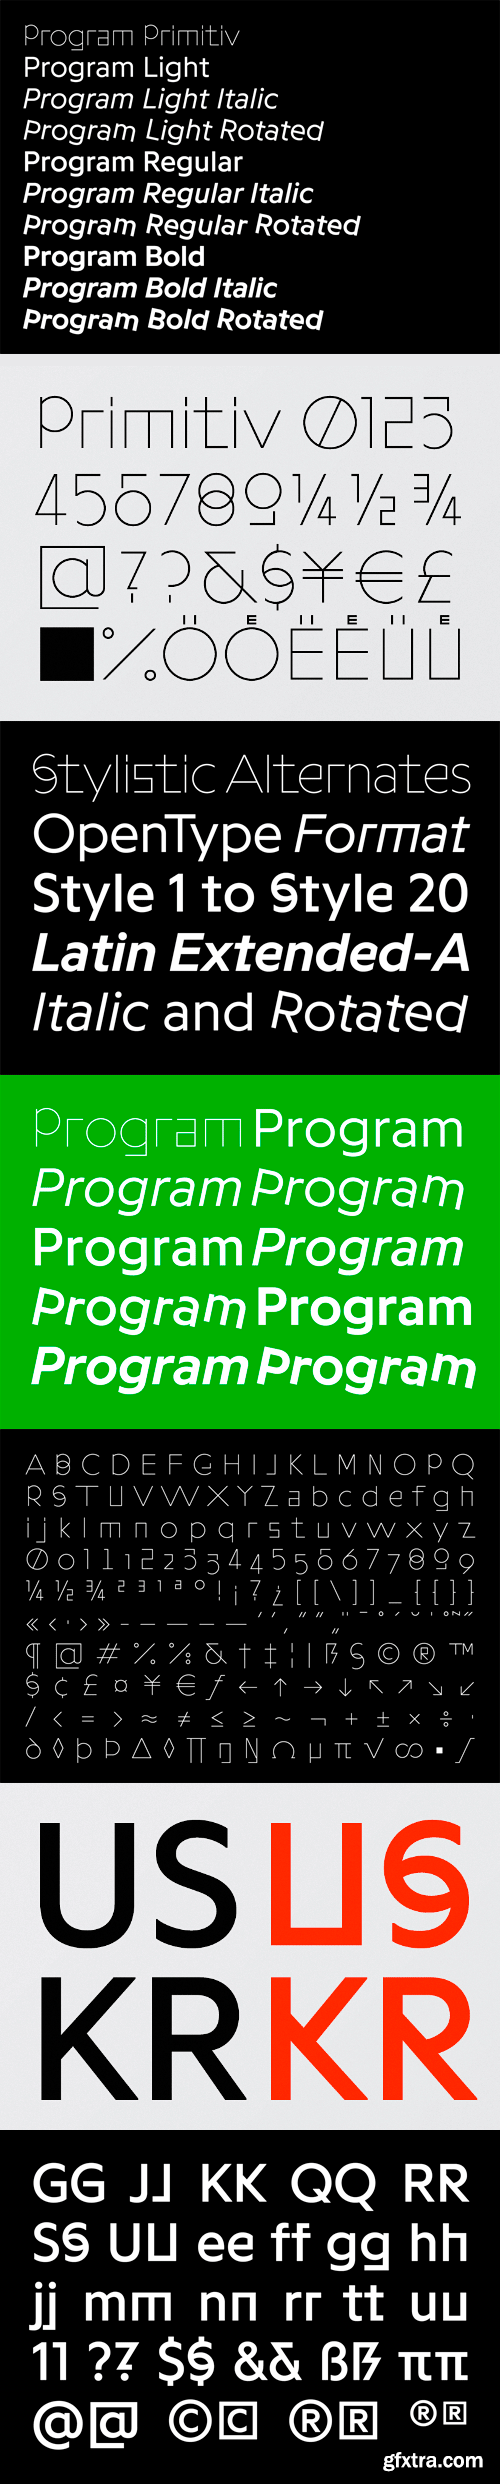 Programme Font Family - 19 Fonts for $516